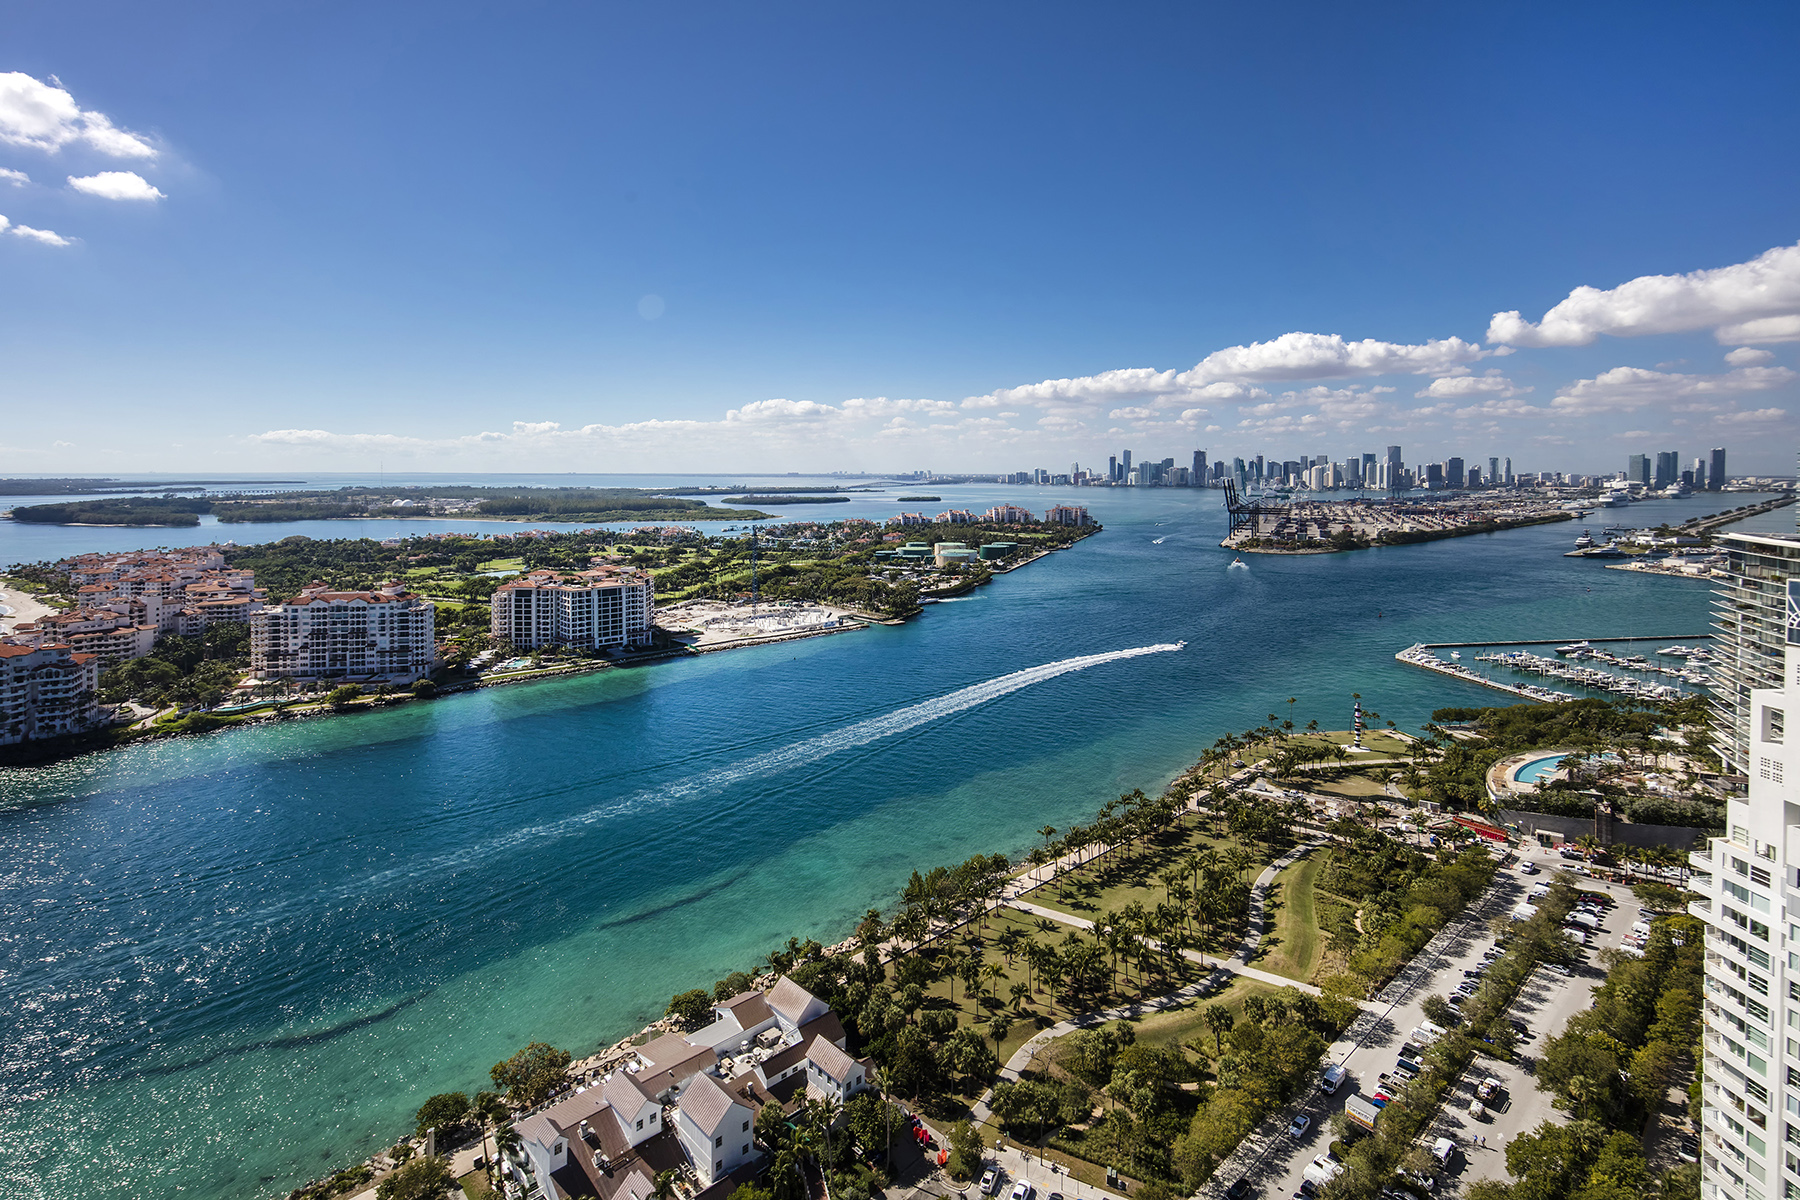 The bay view from Unit 3303 at the Continuum in Miami Beach